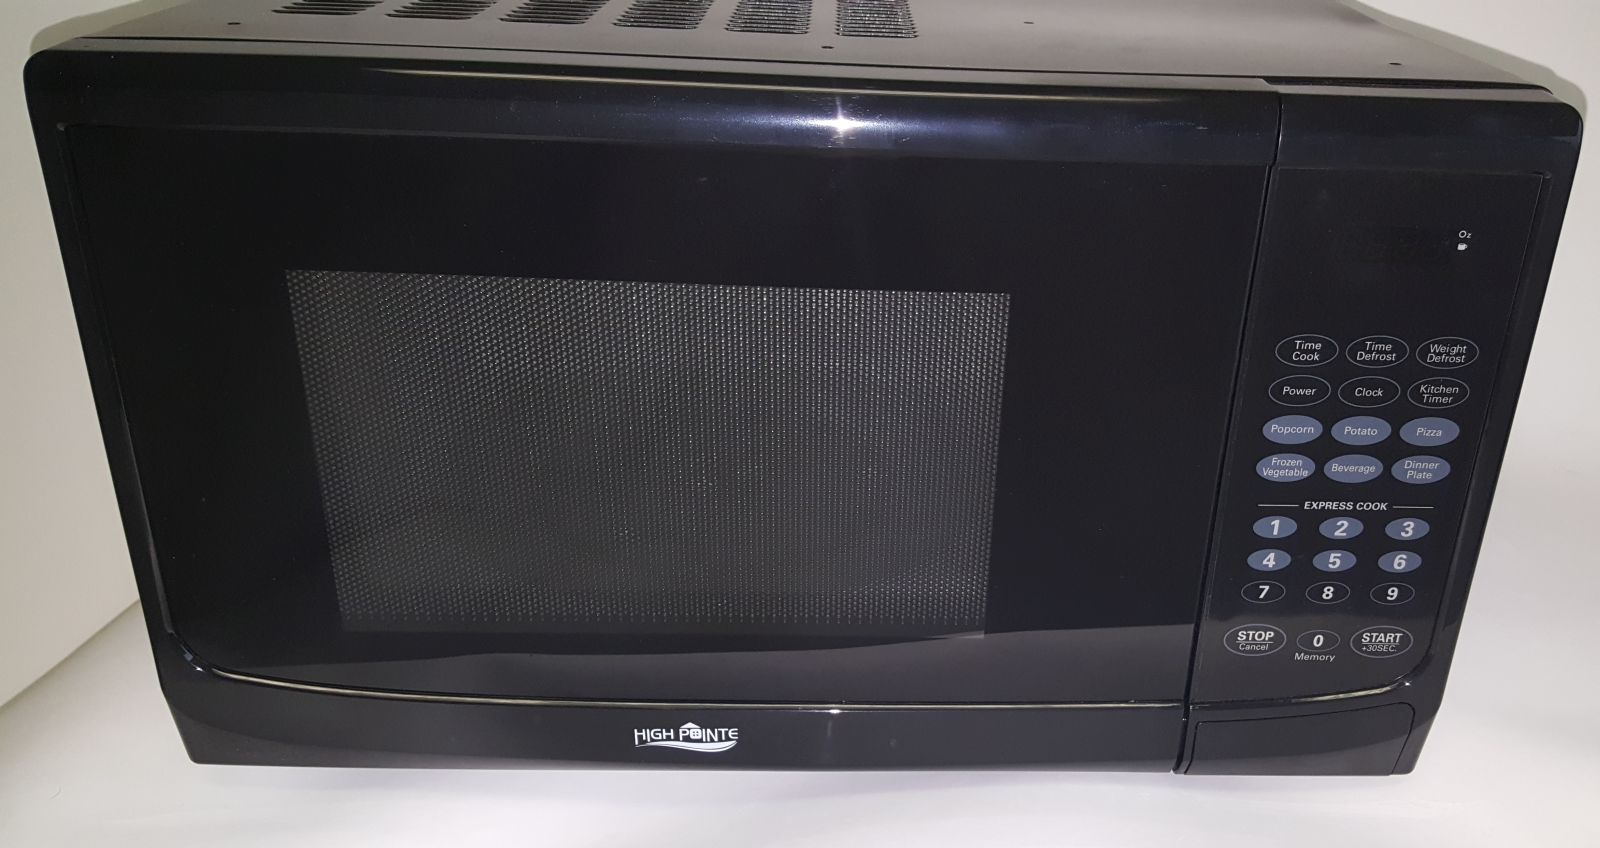 Class A Customs High Pointe Rv 120 Volt Microwave 1 0 Cu